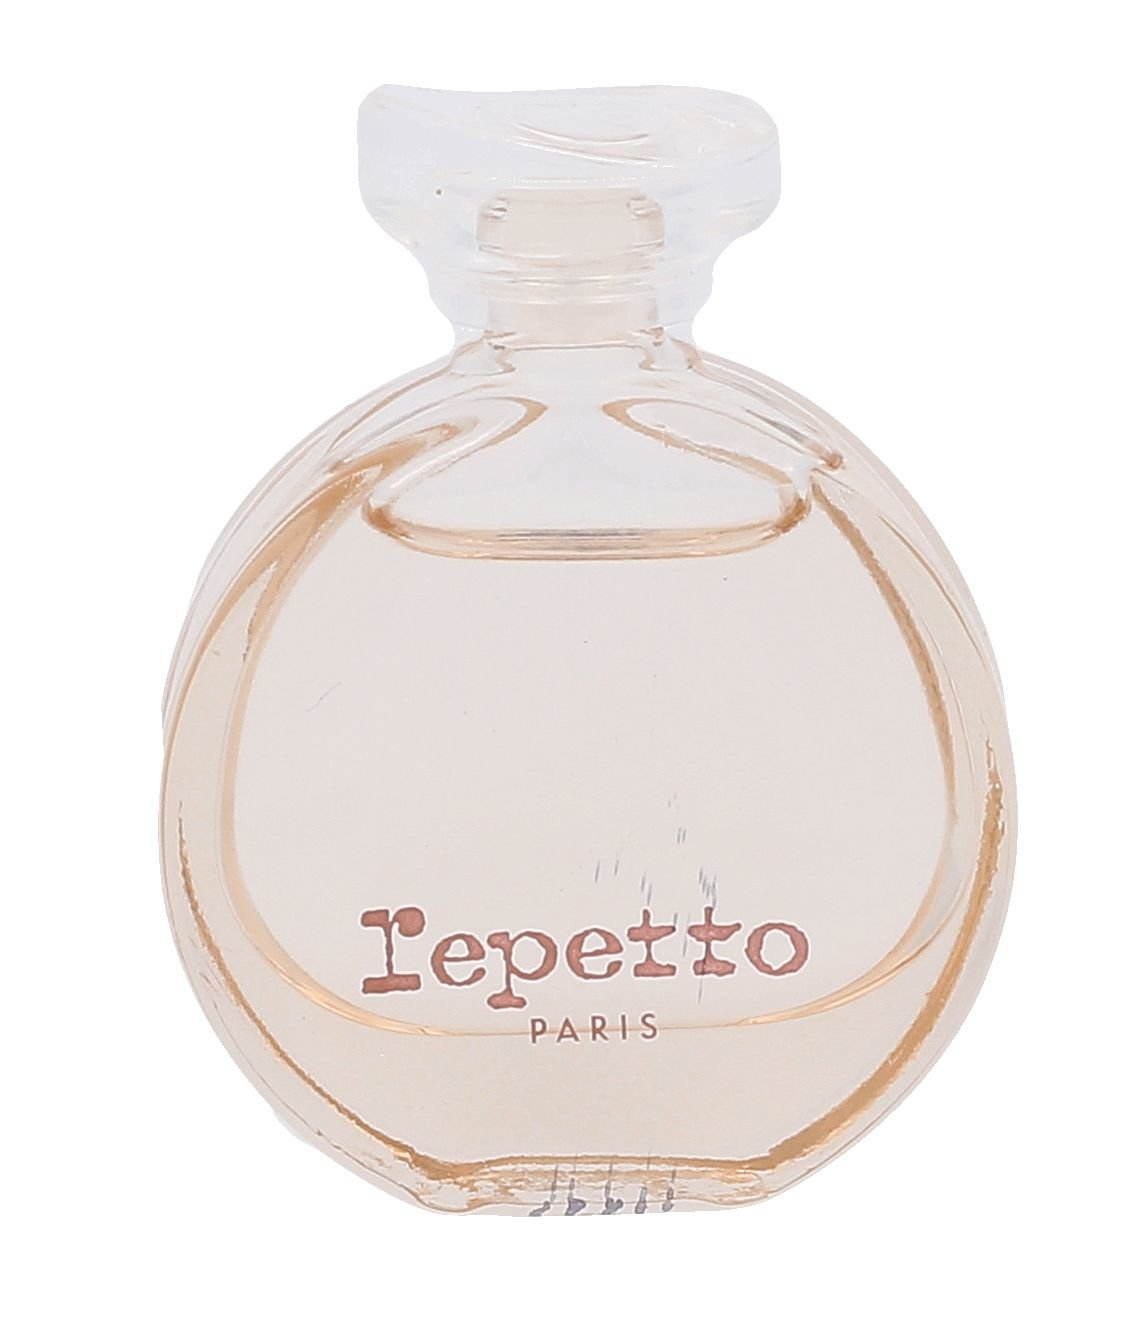 Repetto Repetto EDT 5ml